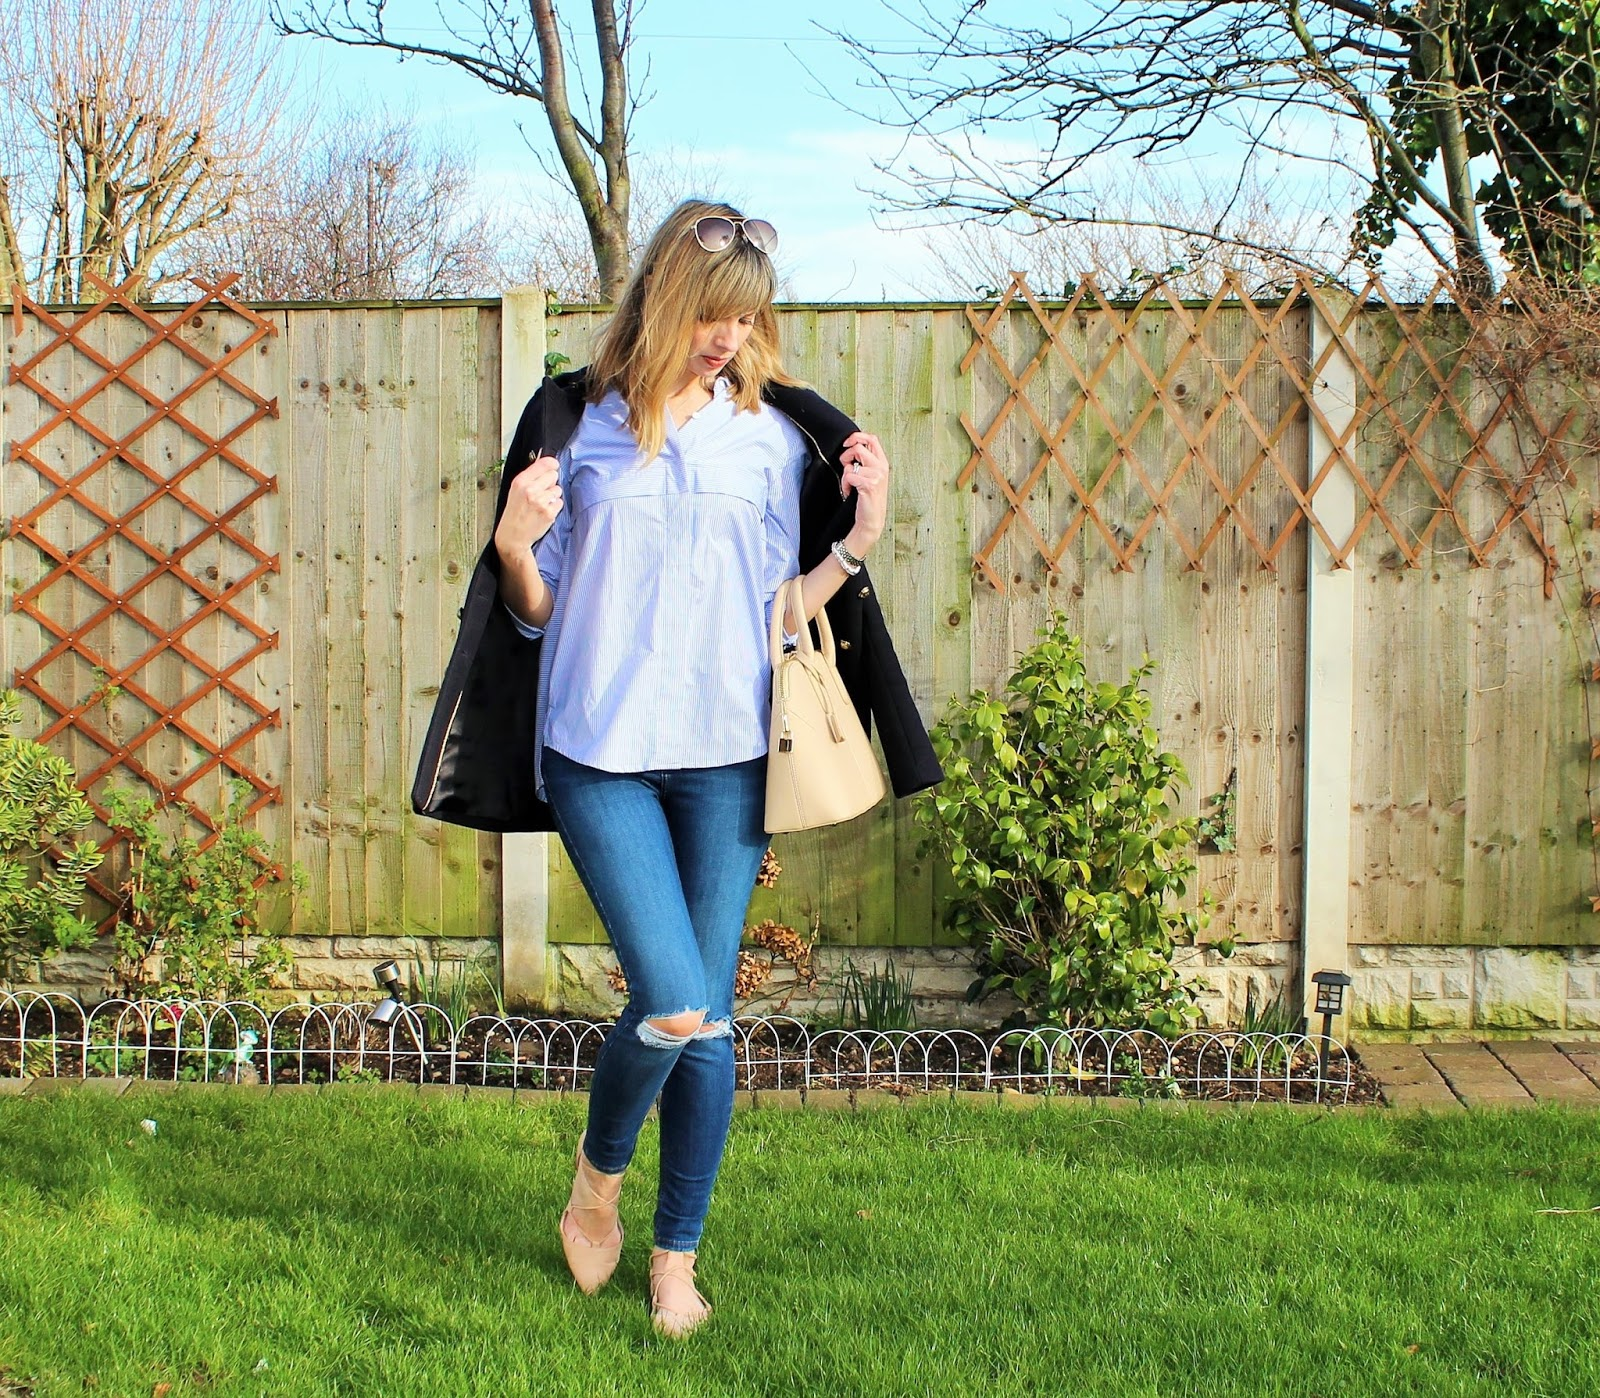 OOTD featuring Zara, Topshop and H&M - Spring 2016